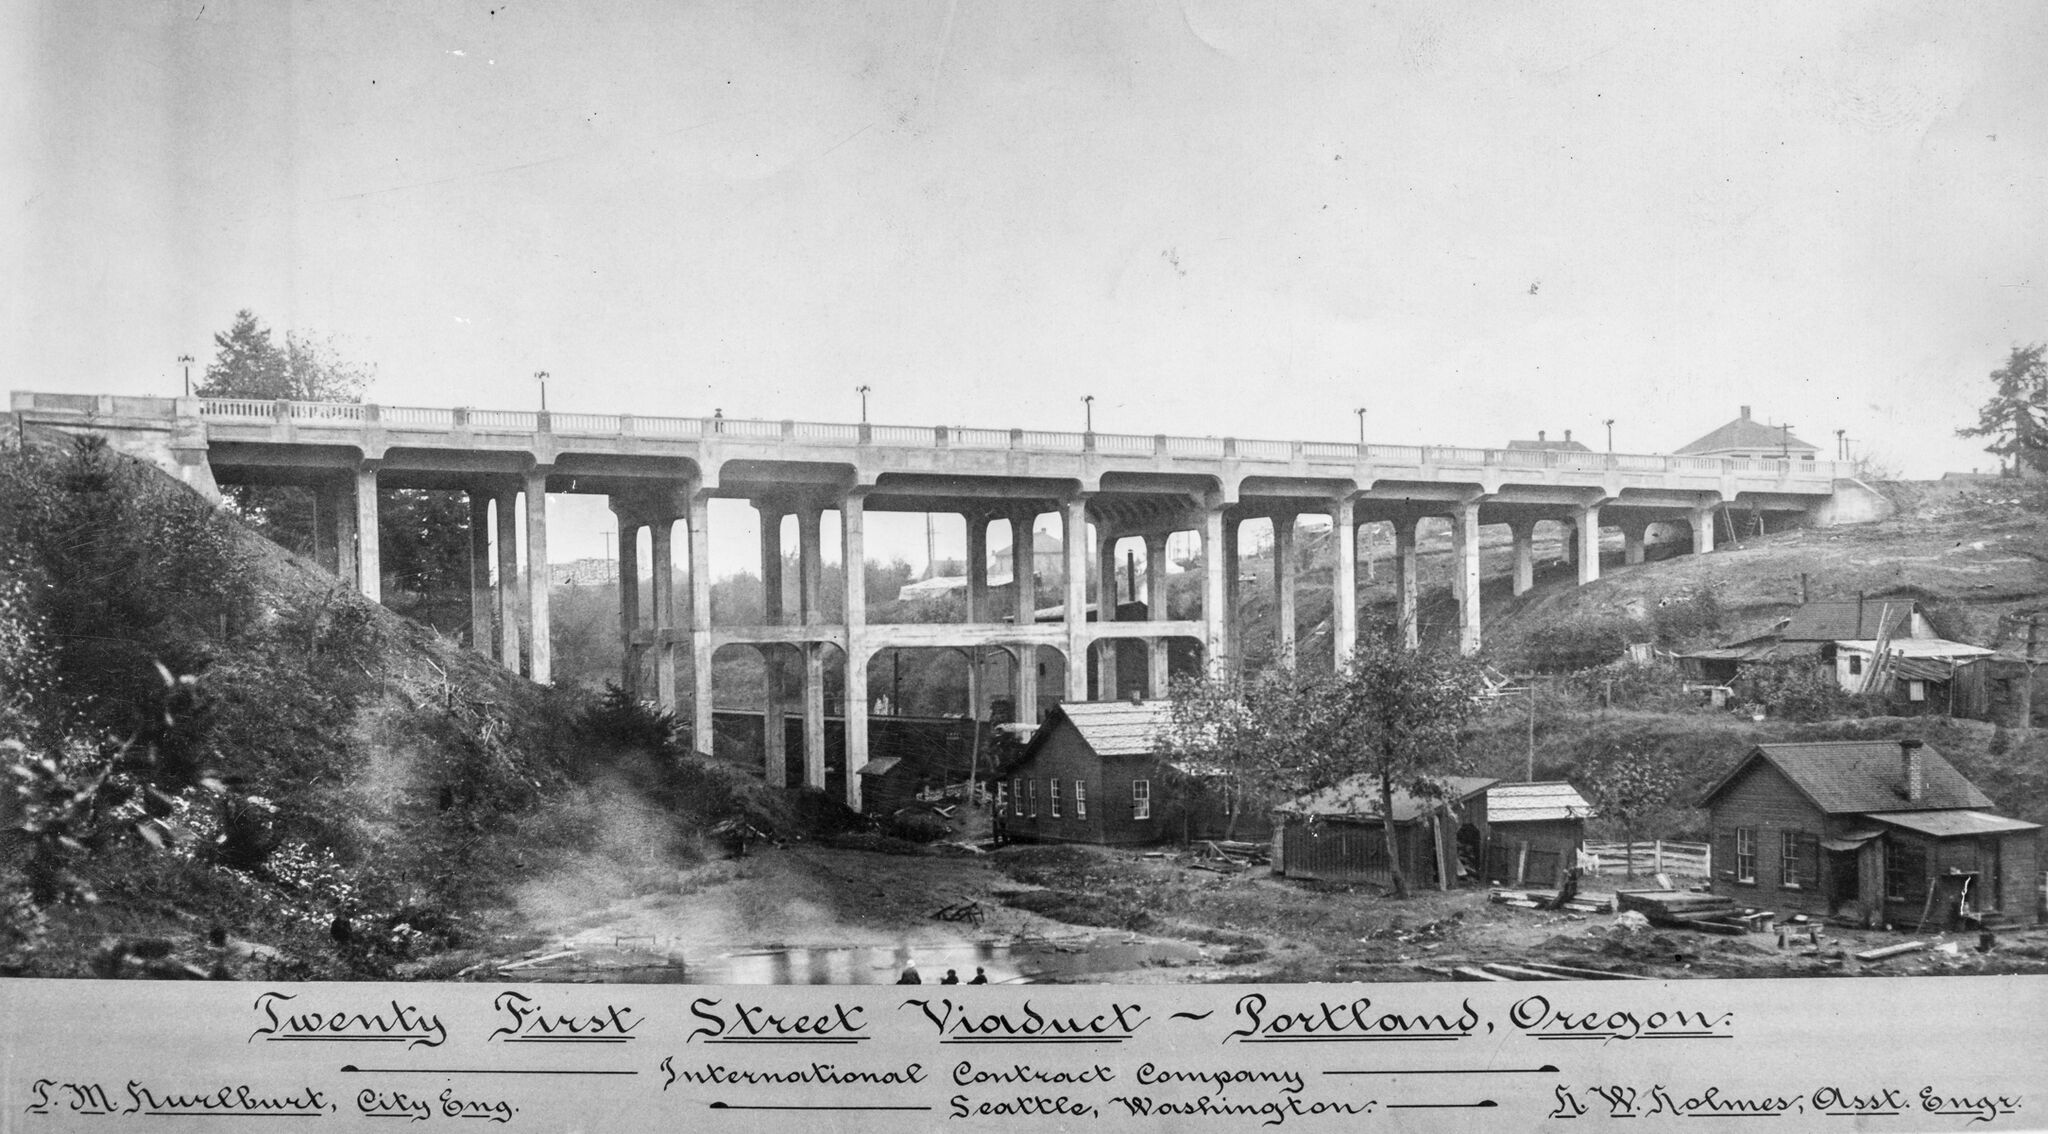 Date Unknown, 21st Street Viaduct crosses Sullivan's Gulch, site of small houses OHS   bb015432